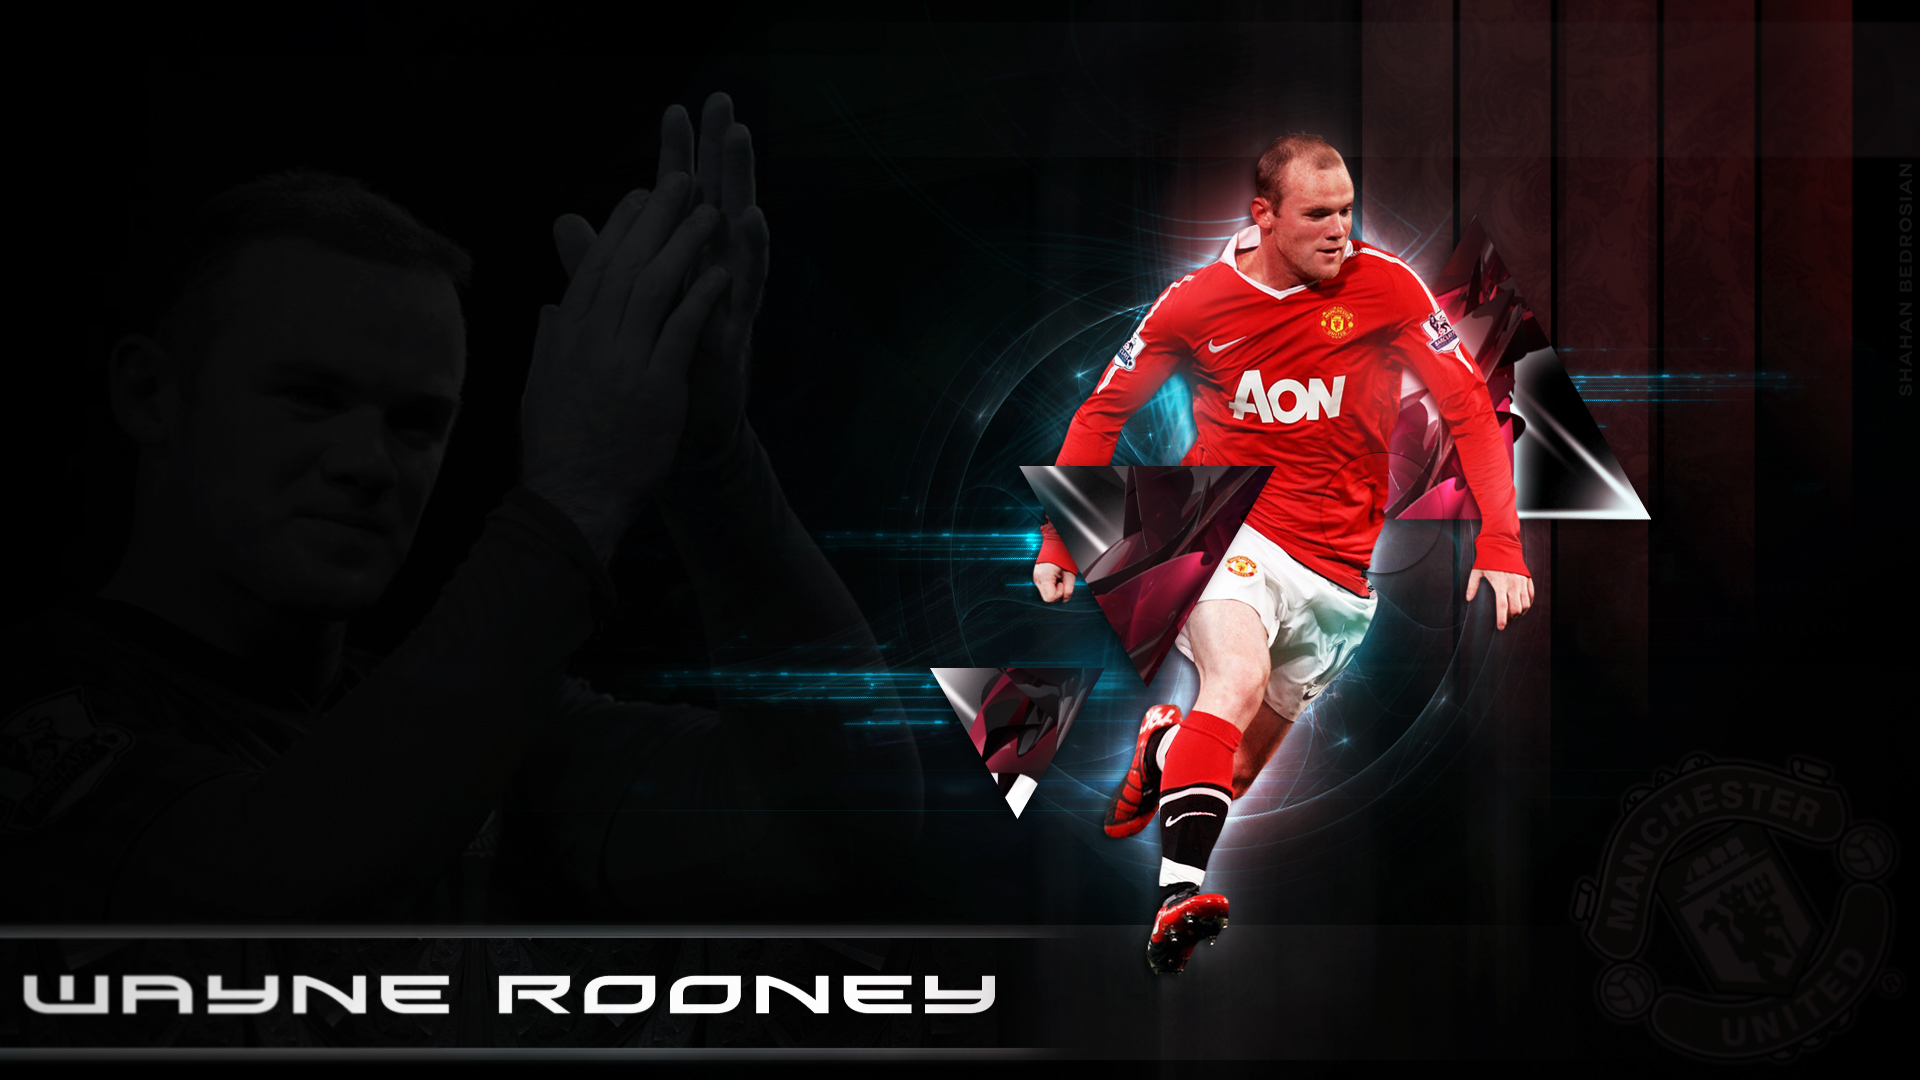 Wayne Rooney Legend Download hd legend background of wayne rooney HD wallpaper